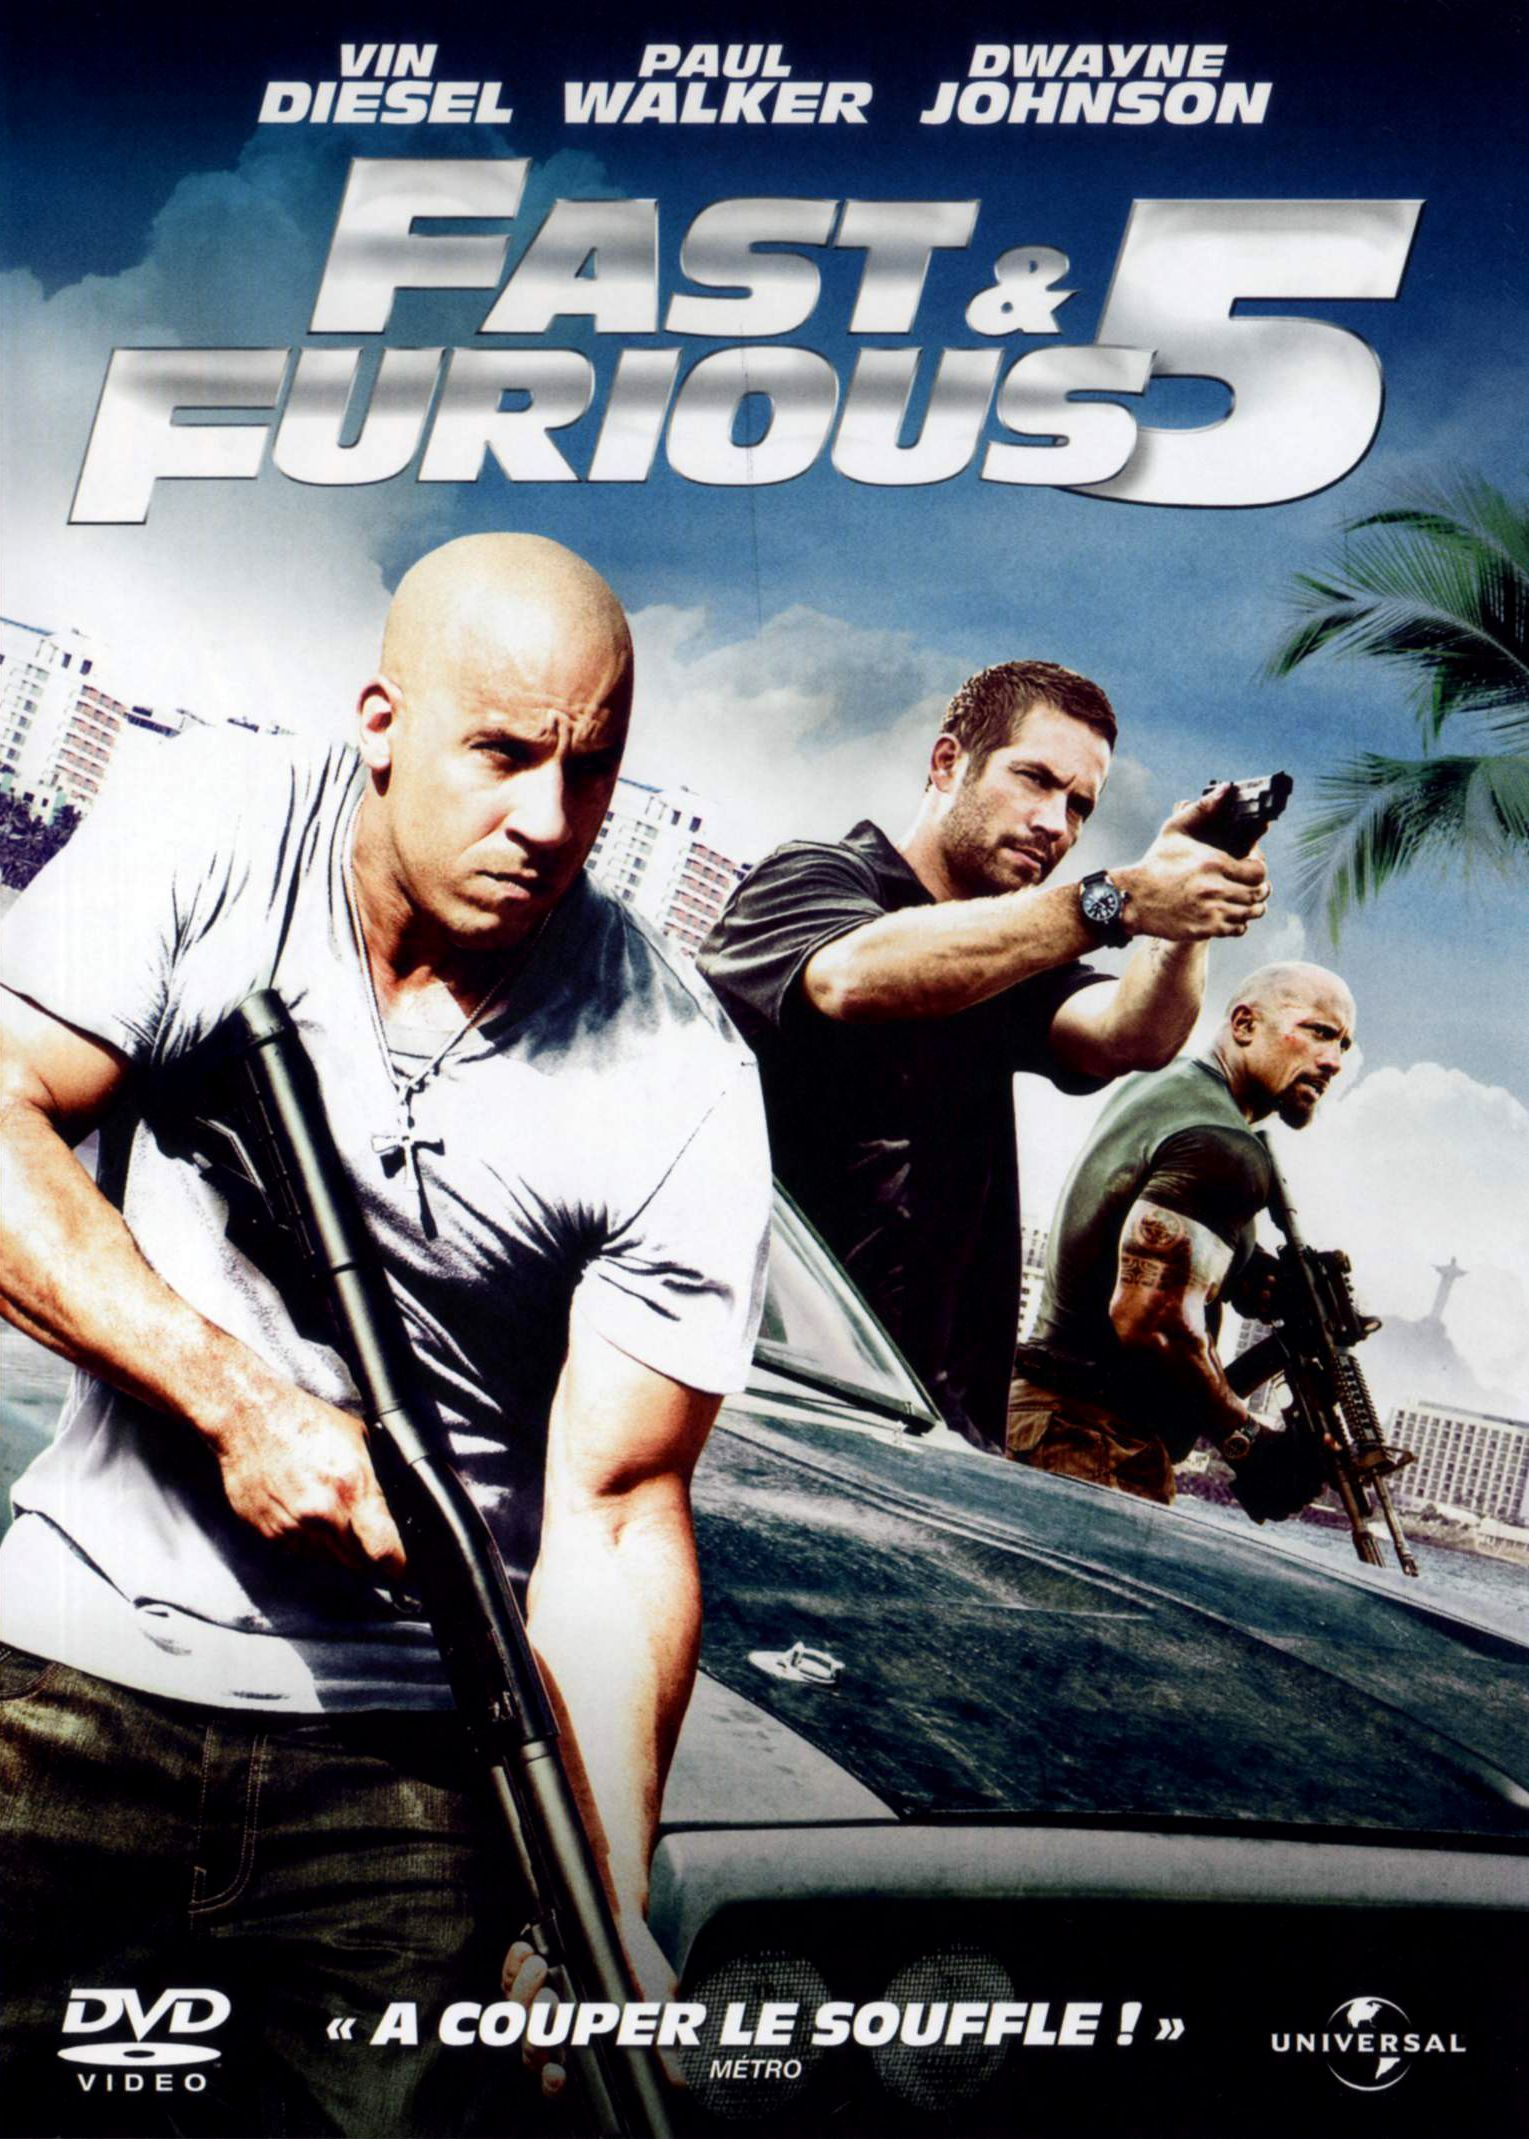 fast and furious 5 full movie online free in english